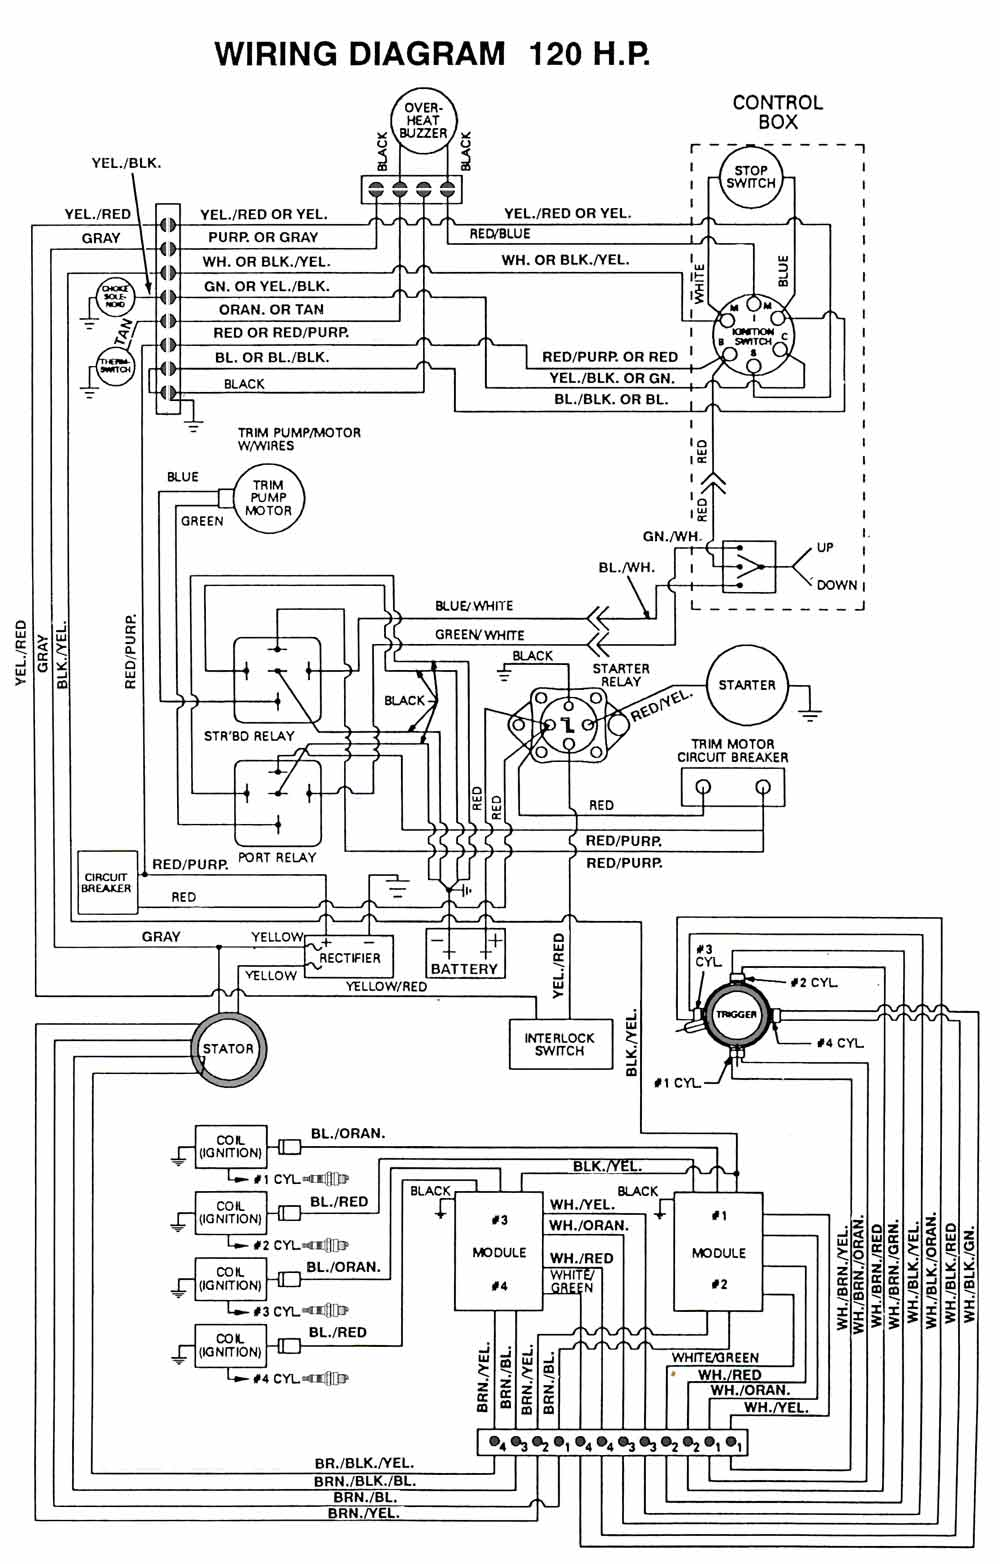 Chrysler Outboard Wiring Diagrams Mastertech Marine Drive By Wire Diagram Force 120 Hp Thru 1991a Models Engine